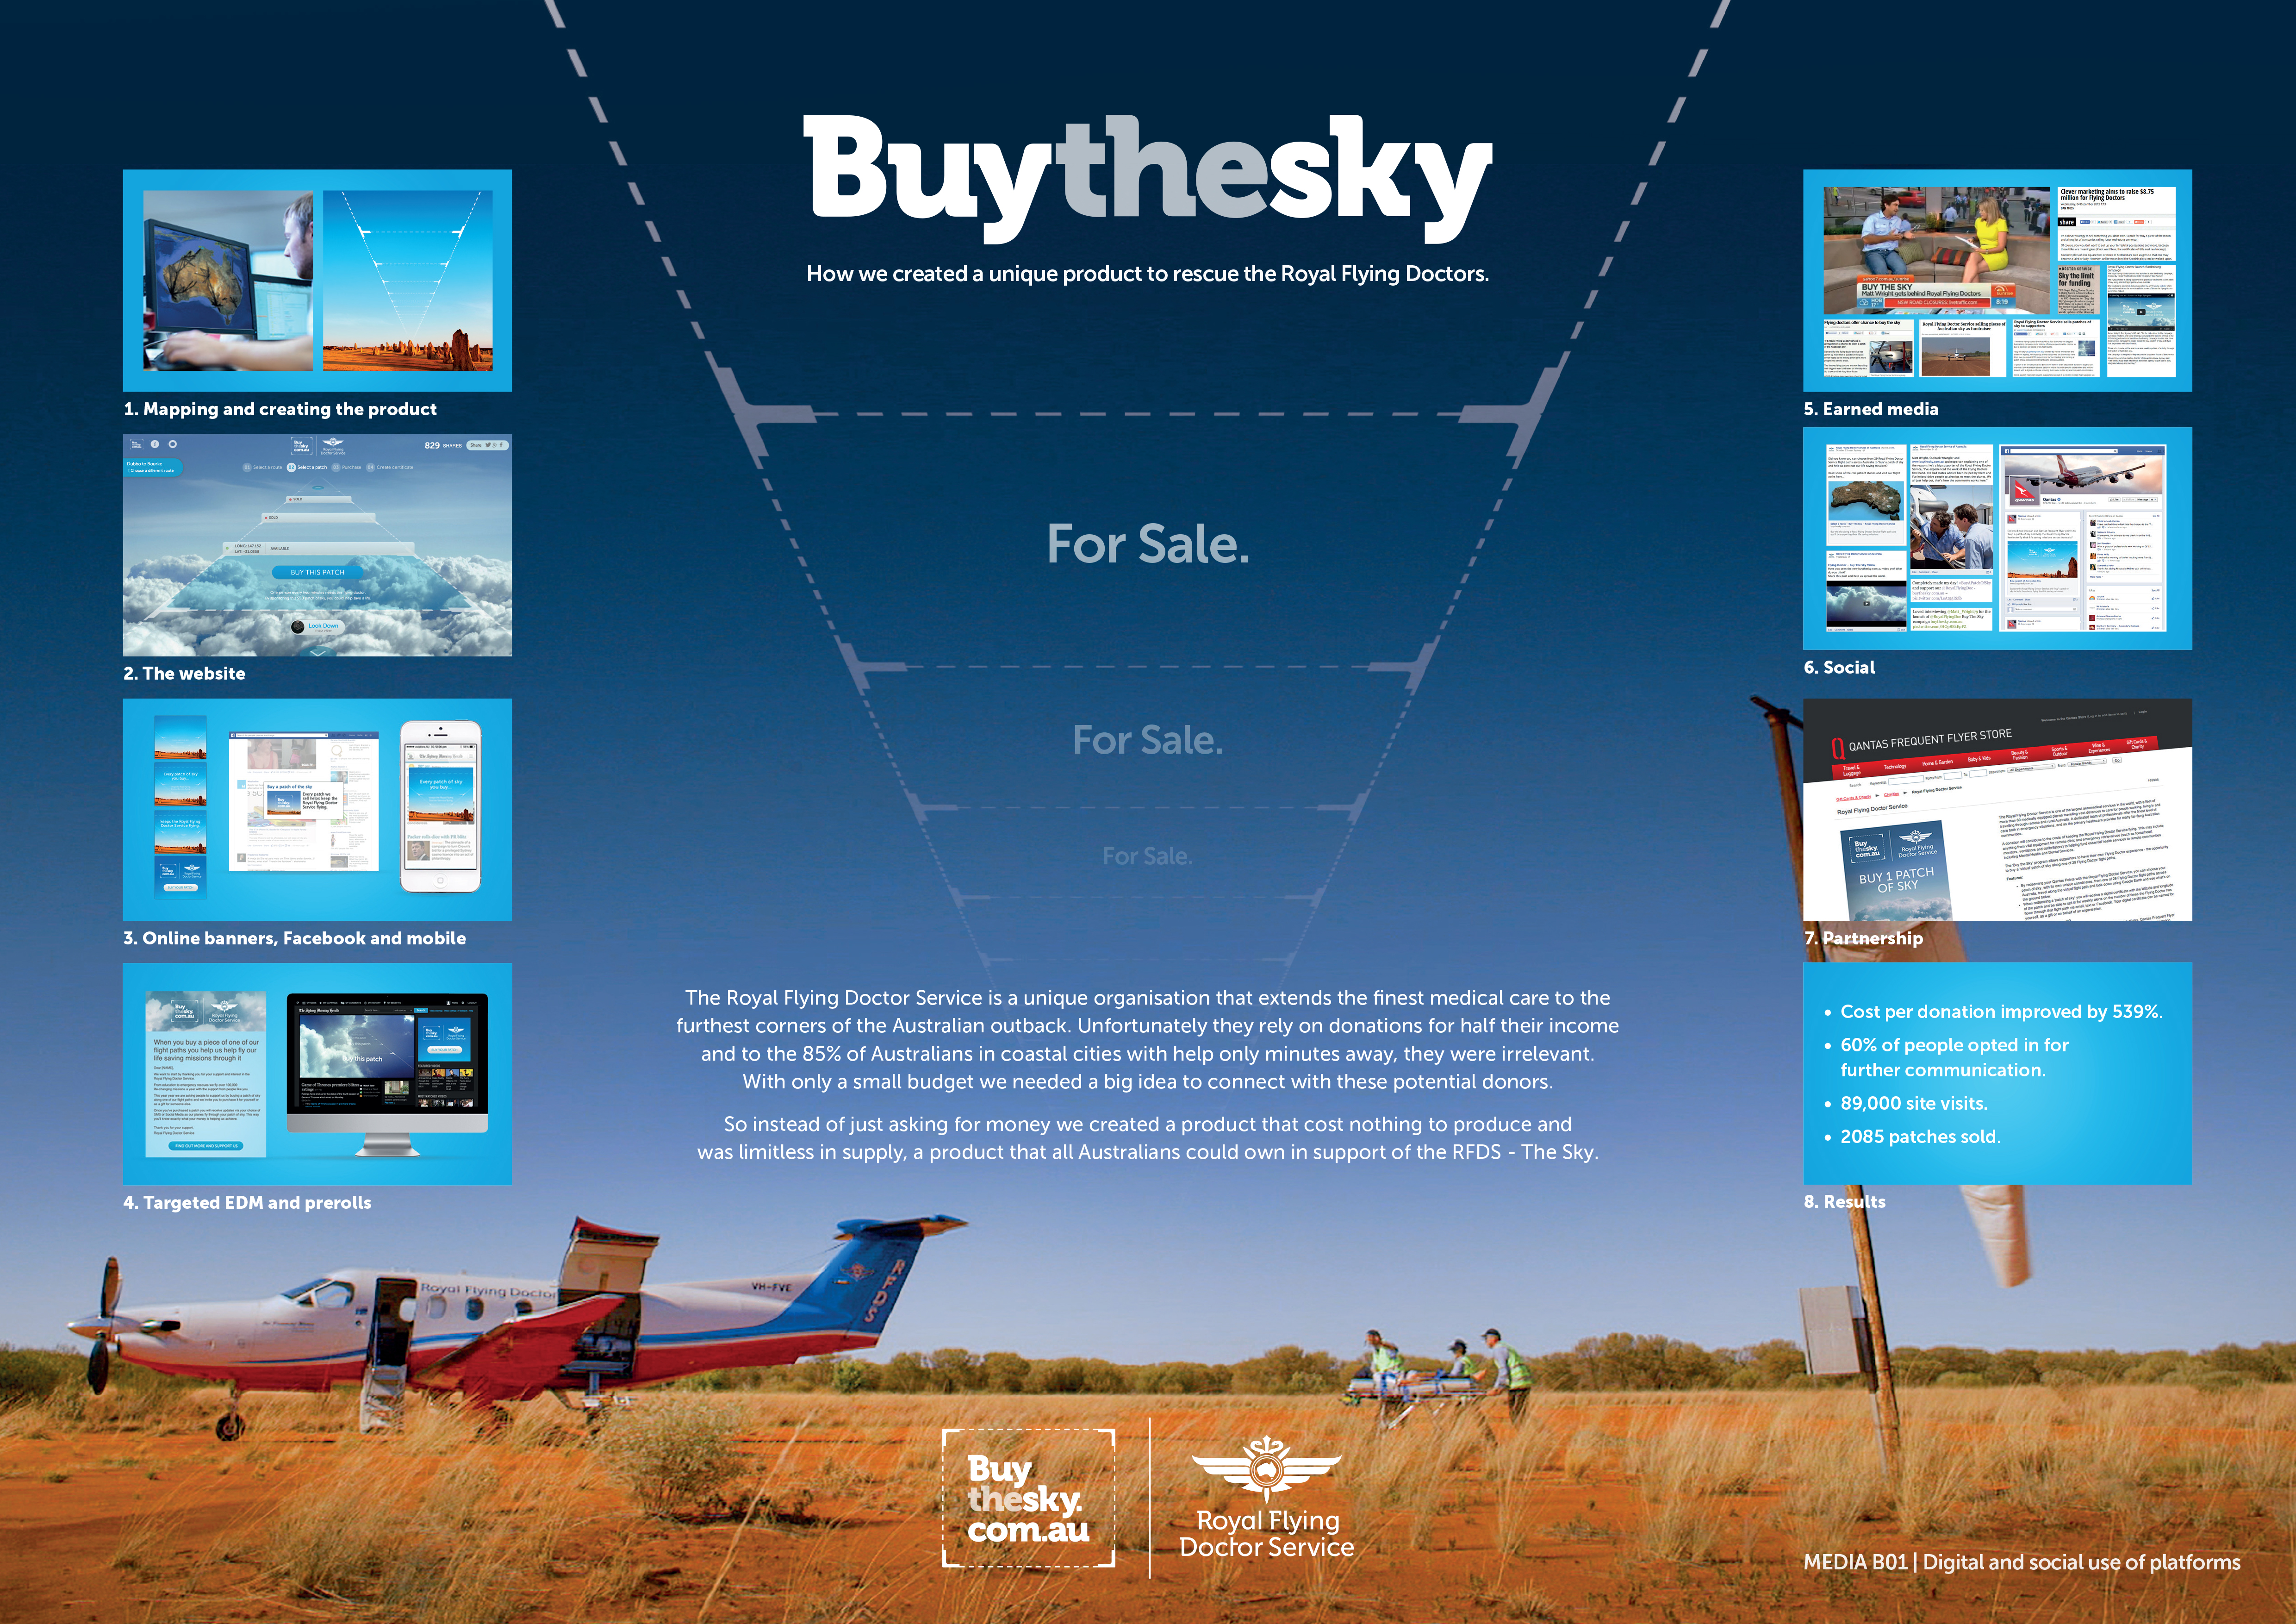 Buy The Sky - case study board